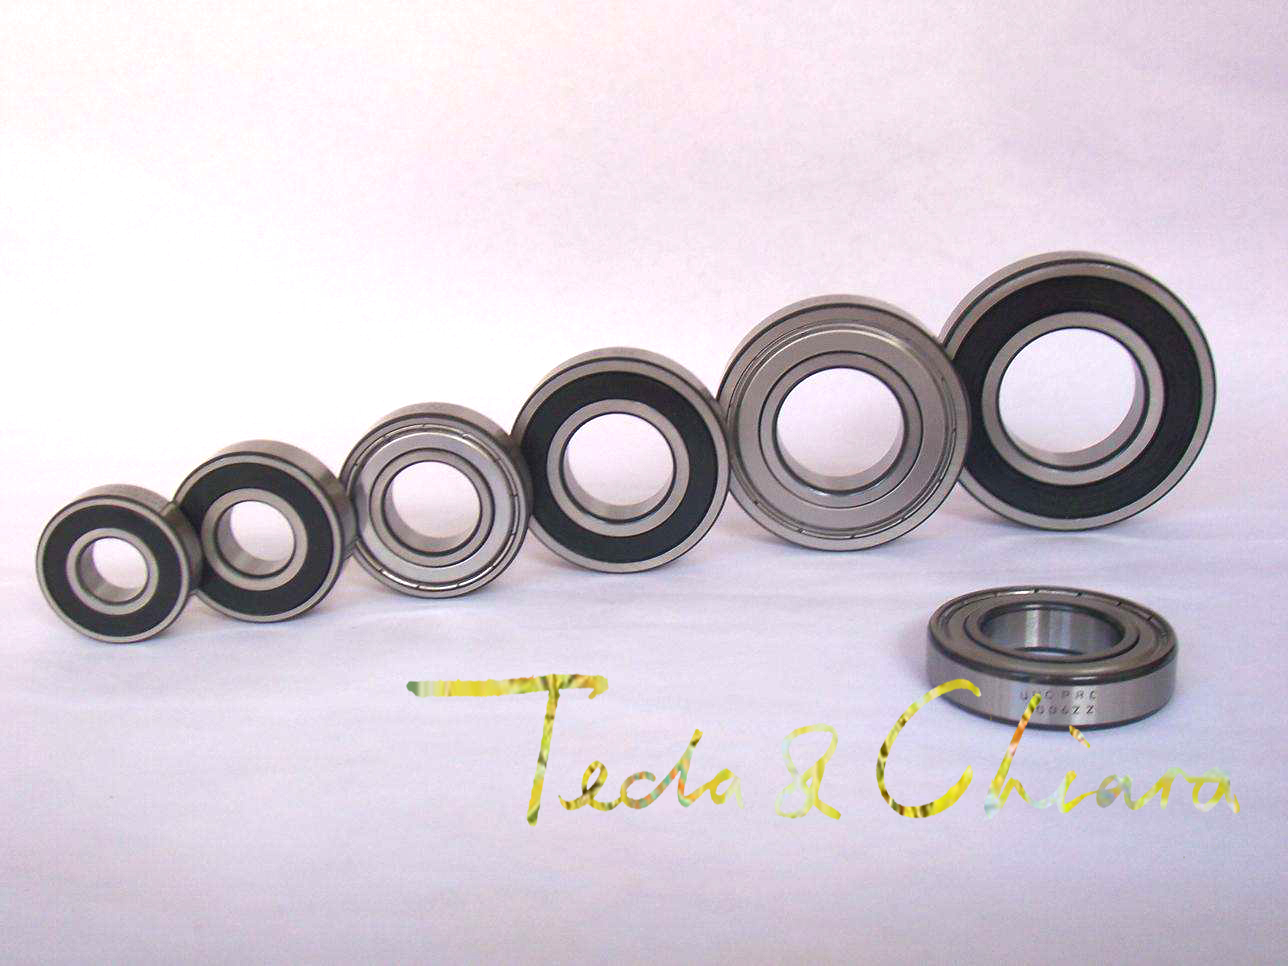 6000 6000ZZ 6000RS 6000-2Z 6000Z 6000-2RS ZZ RS RZ 2RZ Deep Groove Ball Bearings 10 x 26 x 8mm High Quality 6704 6704zz 6704rs 6704 2z 6704z 6704 2rs zz rs rz 2rz deep groove ball bearings 20 x 27 x 4mm high quality